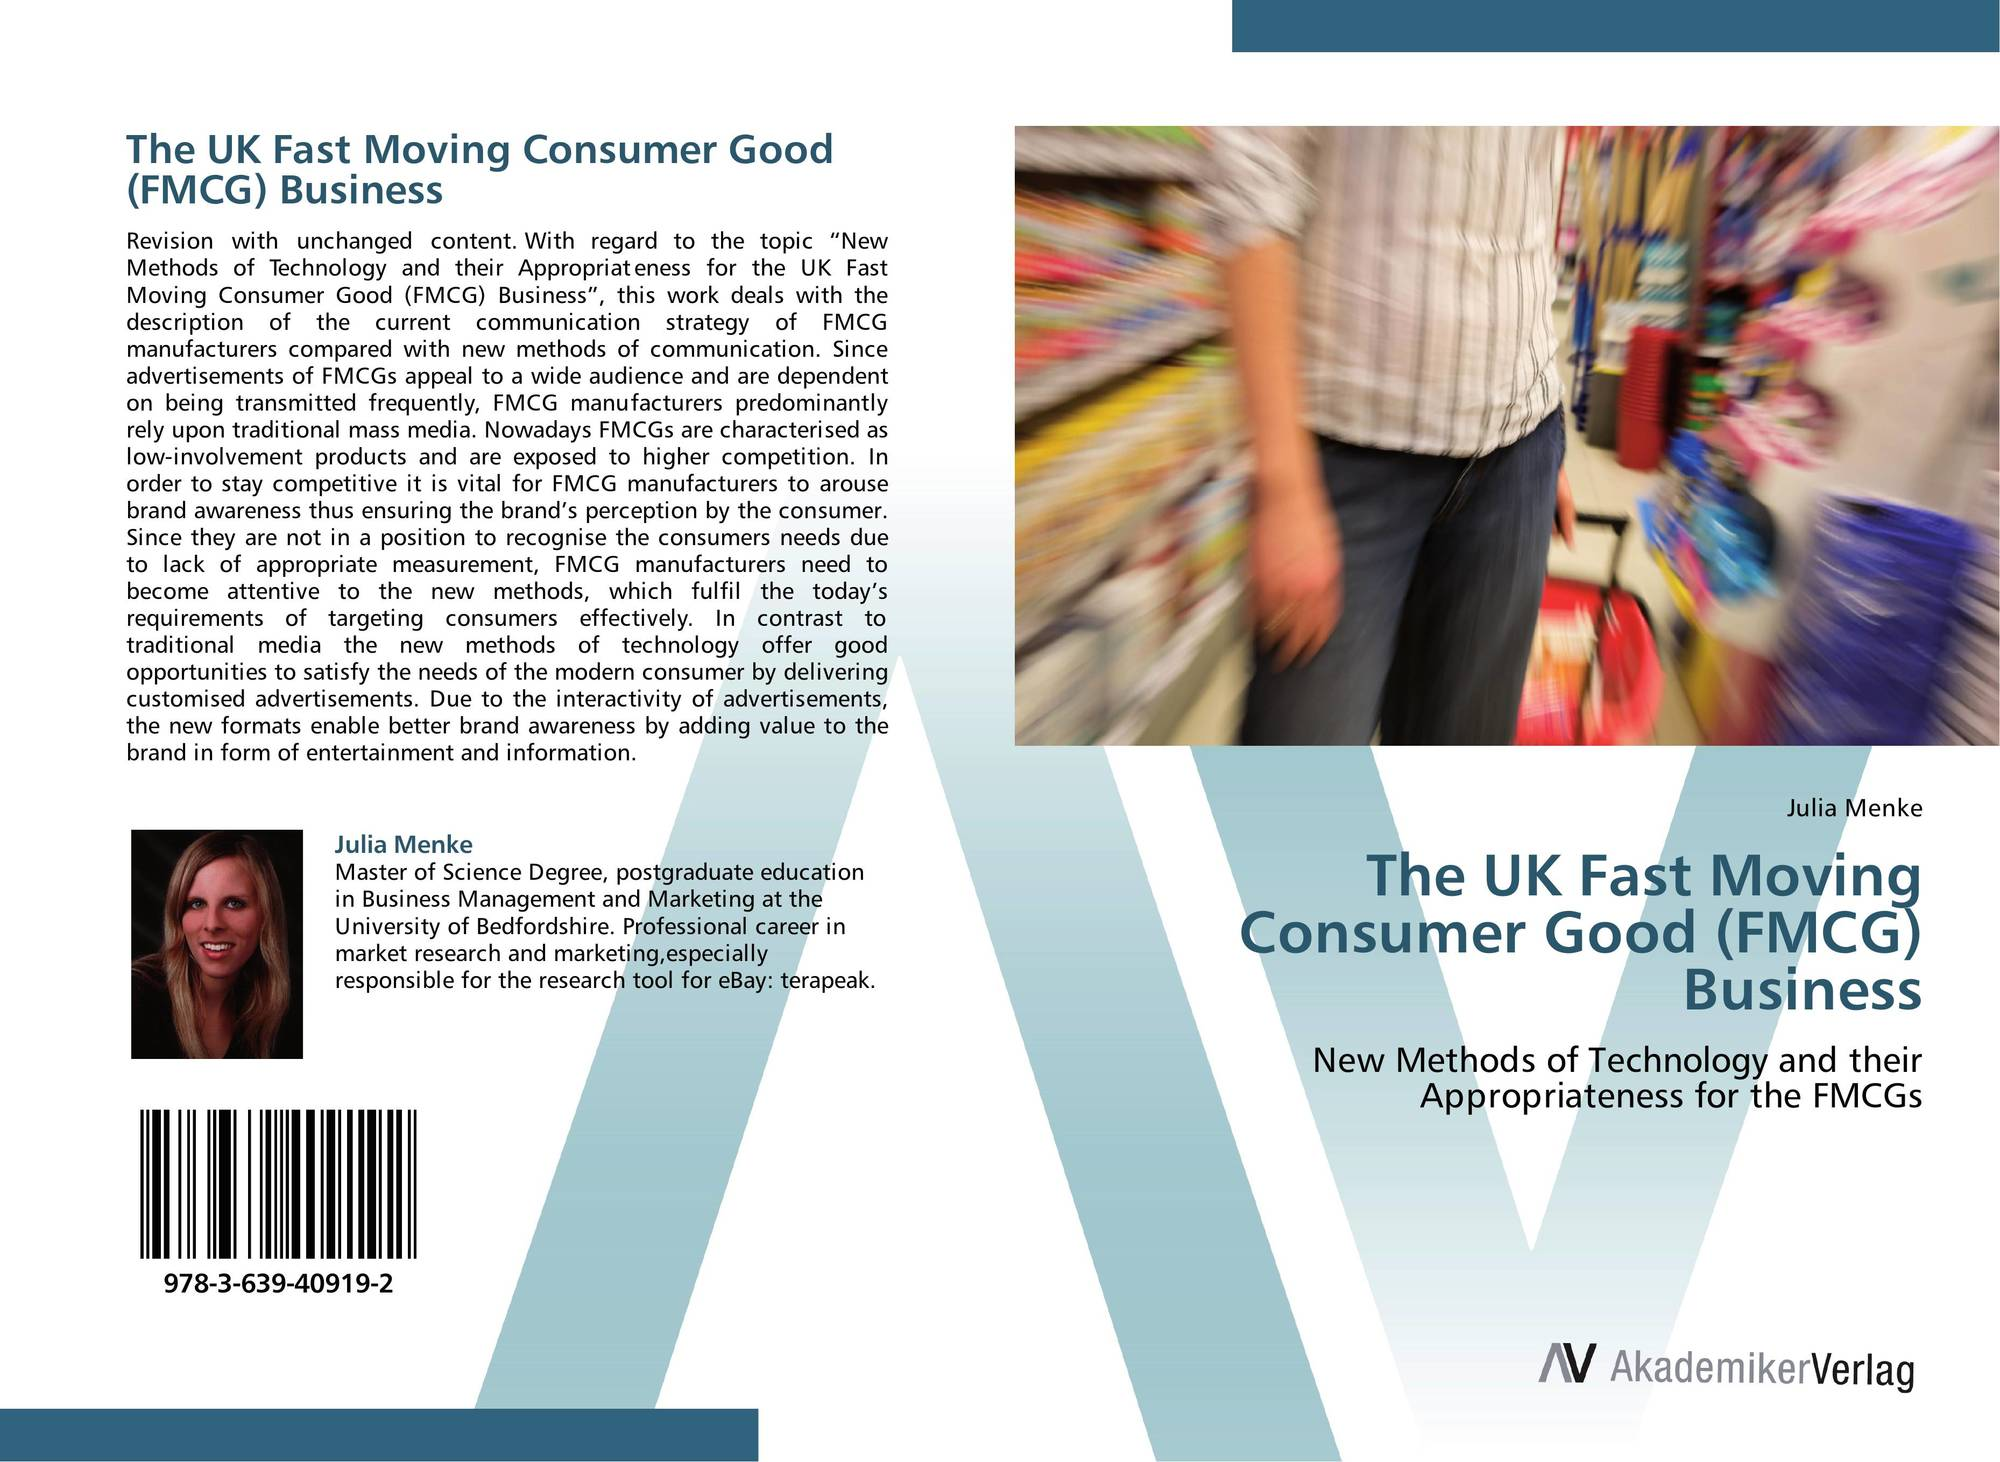 role of branding in marketing fmcg products uk marketing essay These subject areas include relationship marketing, branding, direct marketing, international marketing, consumer psychology, online marketing, mobile marketing • an examination of the relationship between perceived risk and brand equity: a comparison of supermarket retailers in uk .